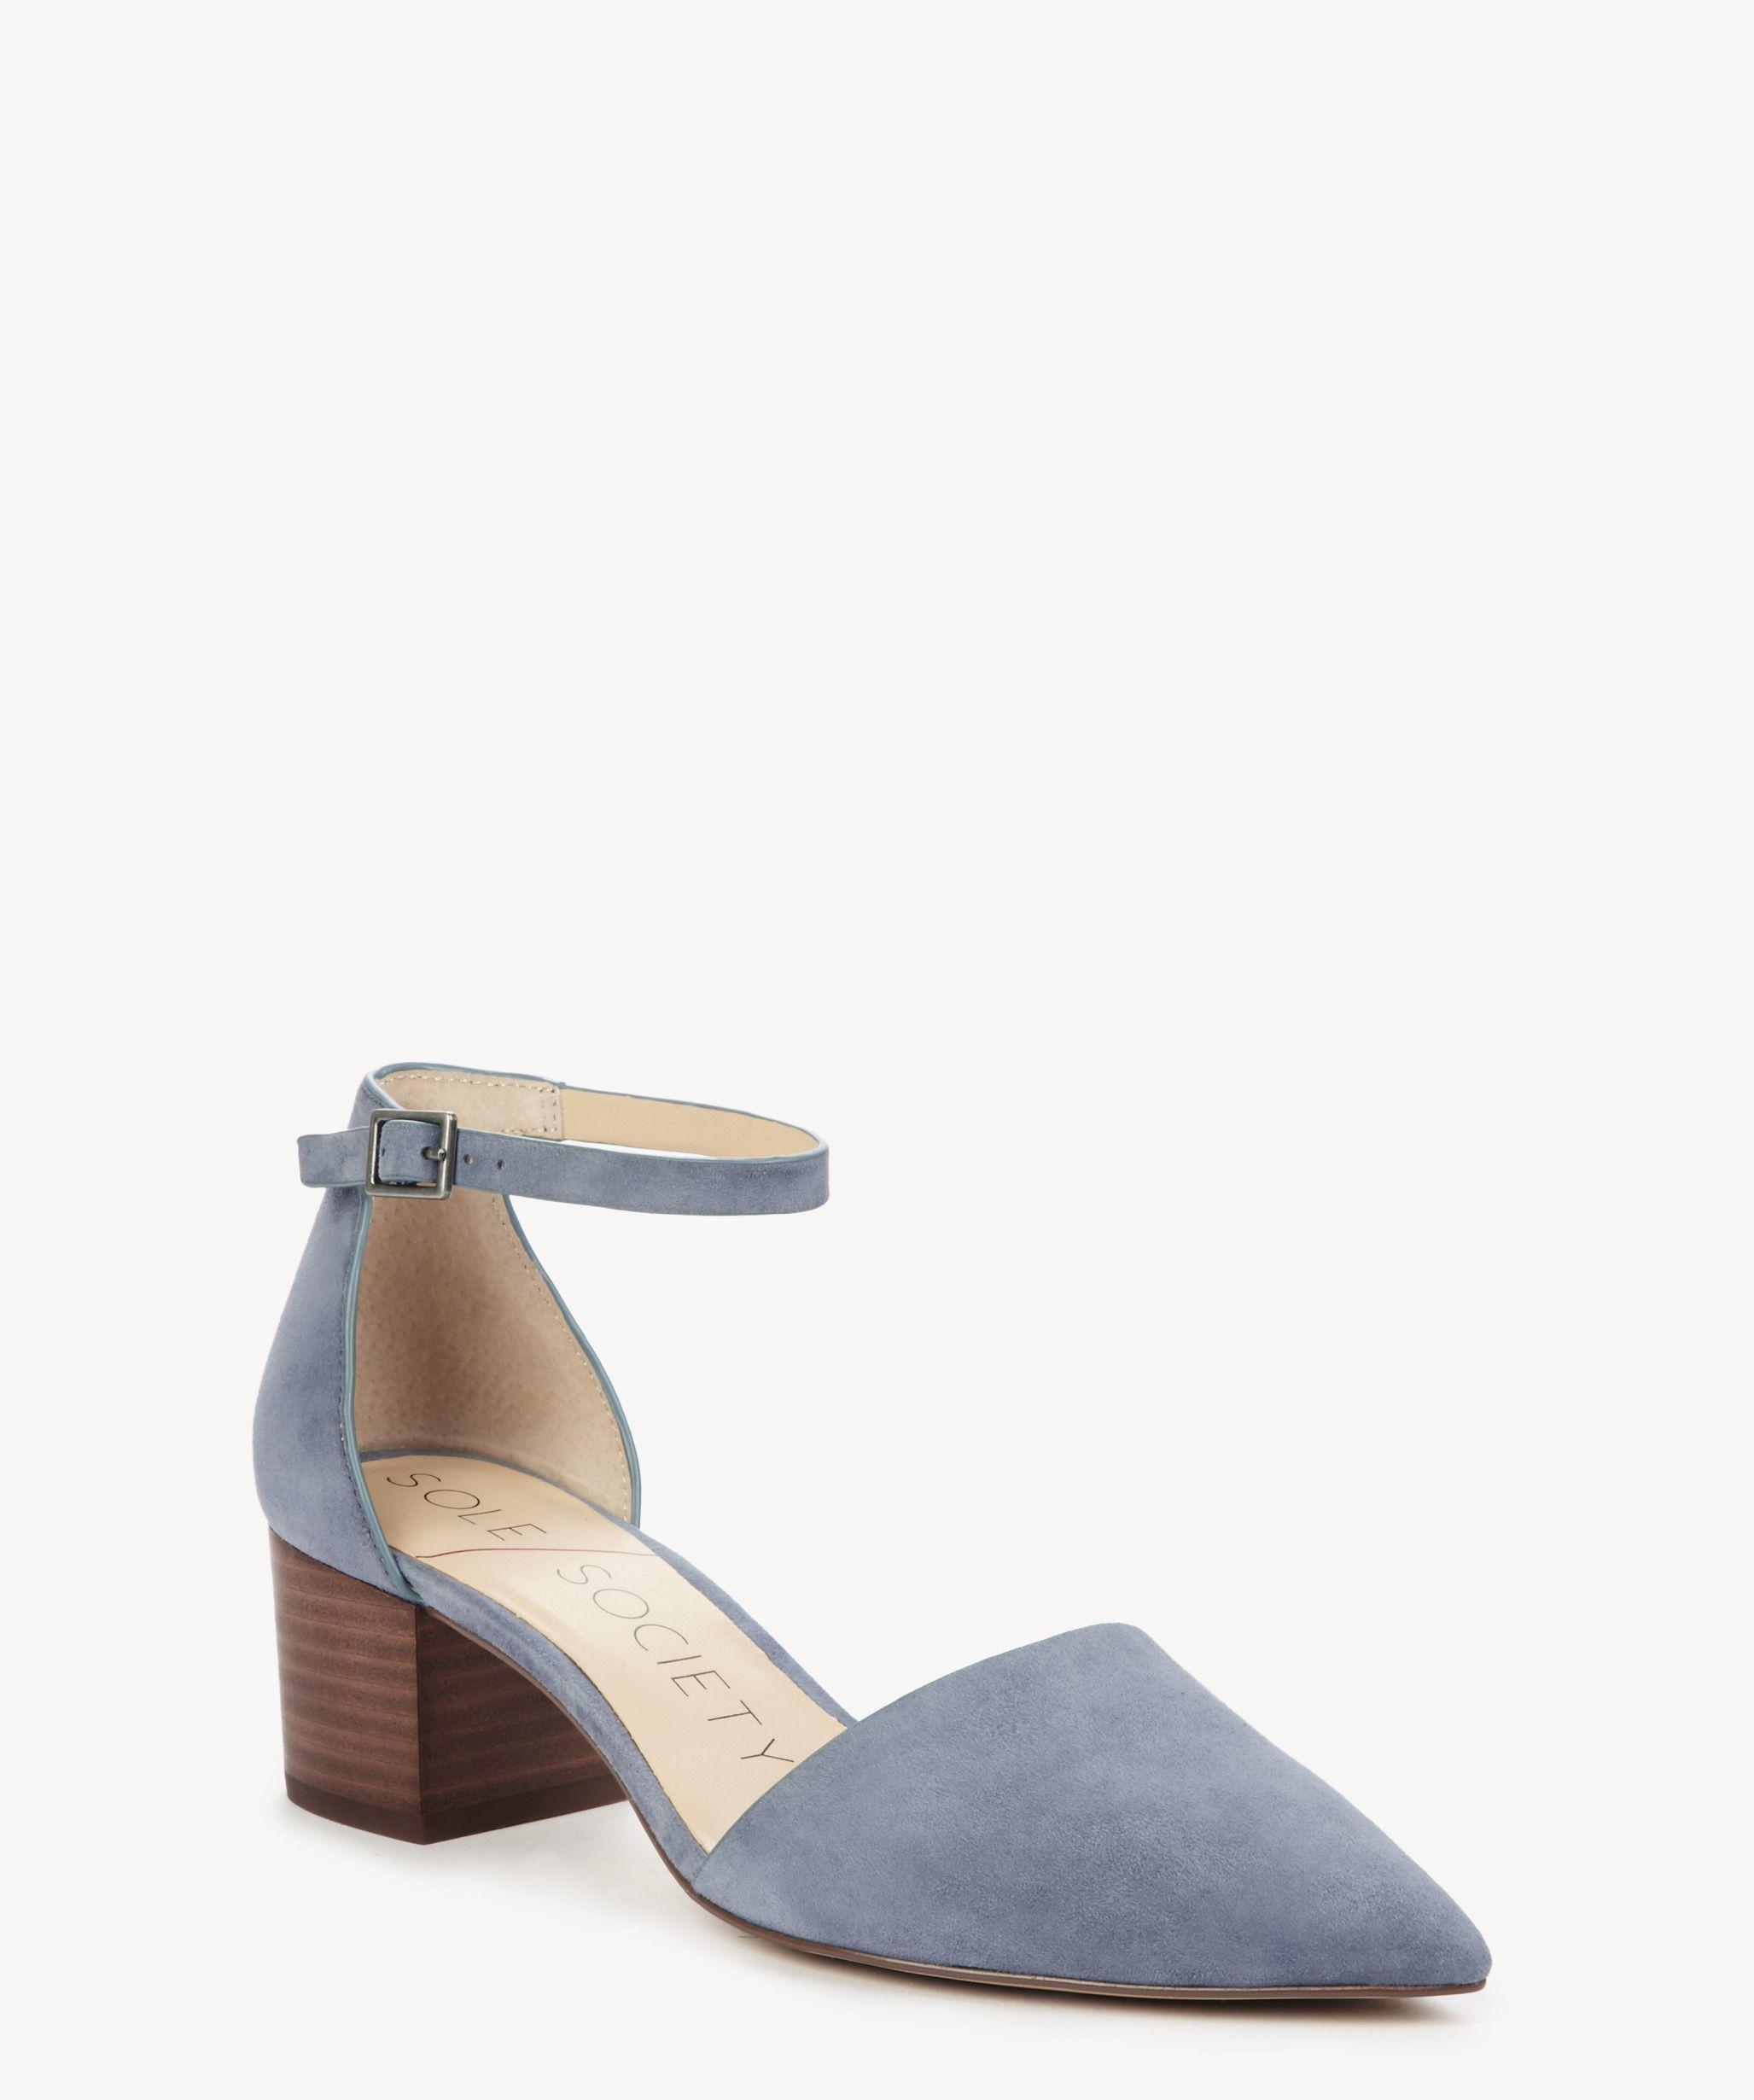 bfd505a17b3 Lyst - Sole Society Katarina Two Piece Block Heel Pump in Blue